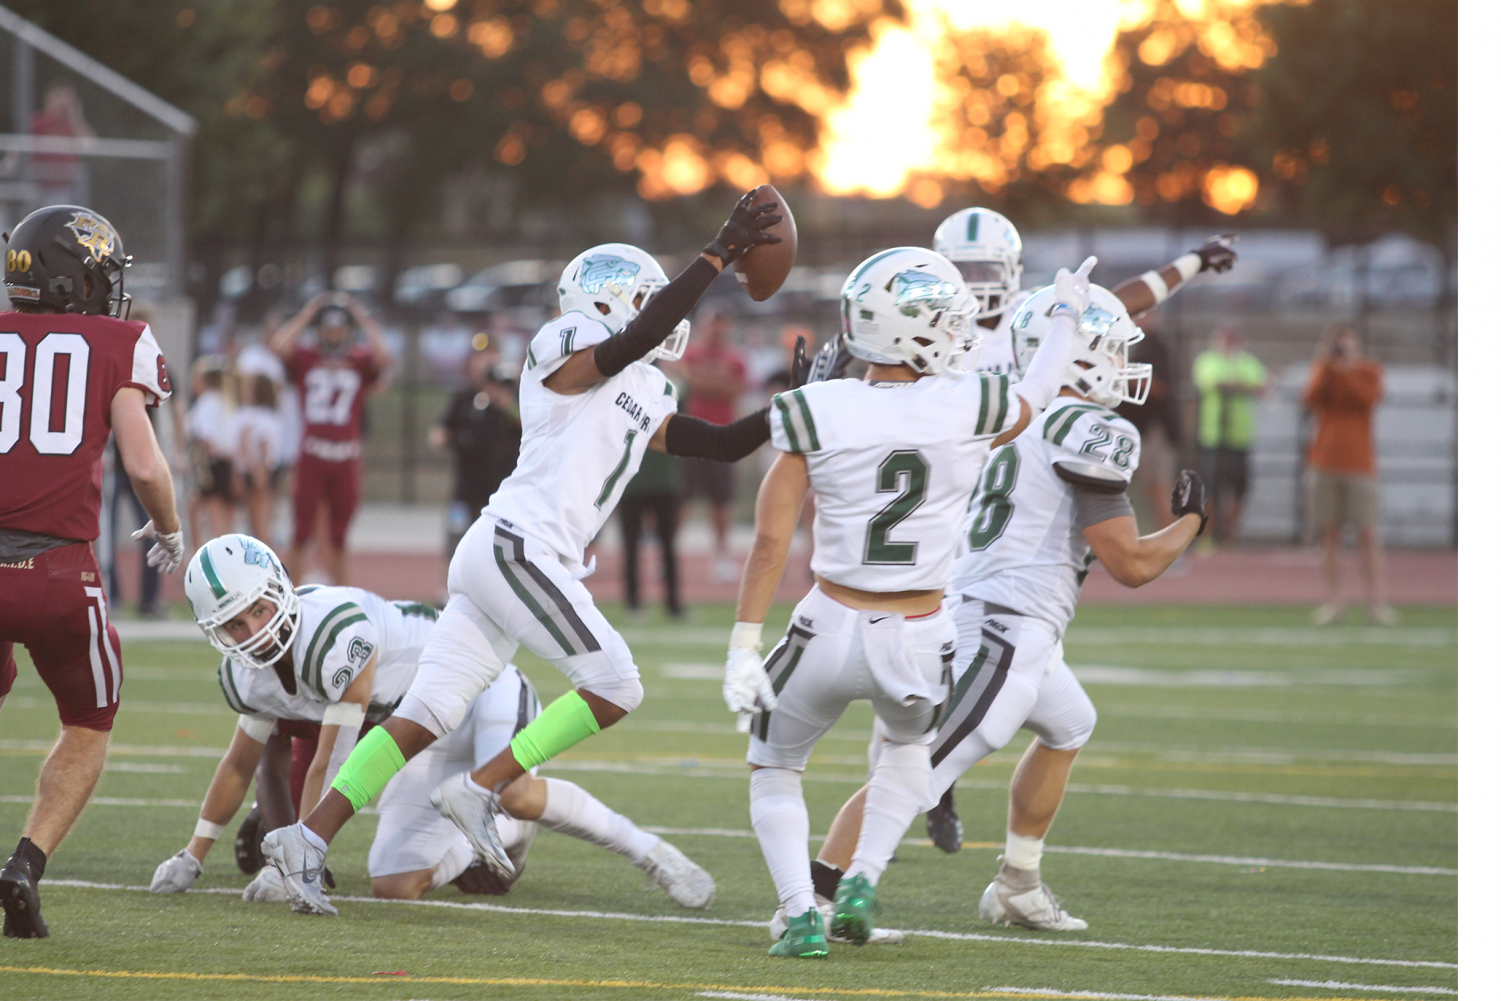 Senior CB Caden Combs celebrates with the defense after picking off a pass on Sept. 27 against Rouse at Bible Stadium. The defense got numerous turnovers against Rouse, thus leading to short fields and points for the offense.